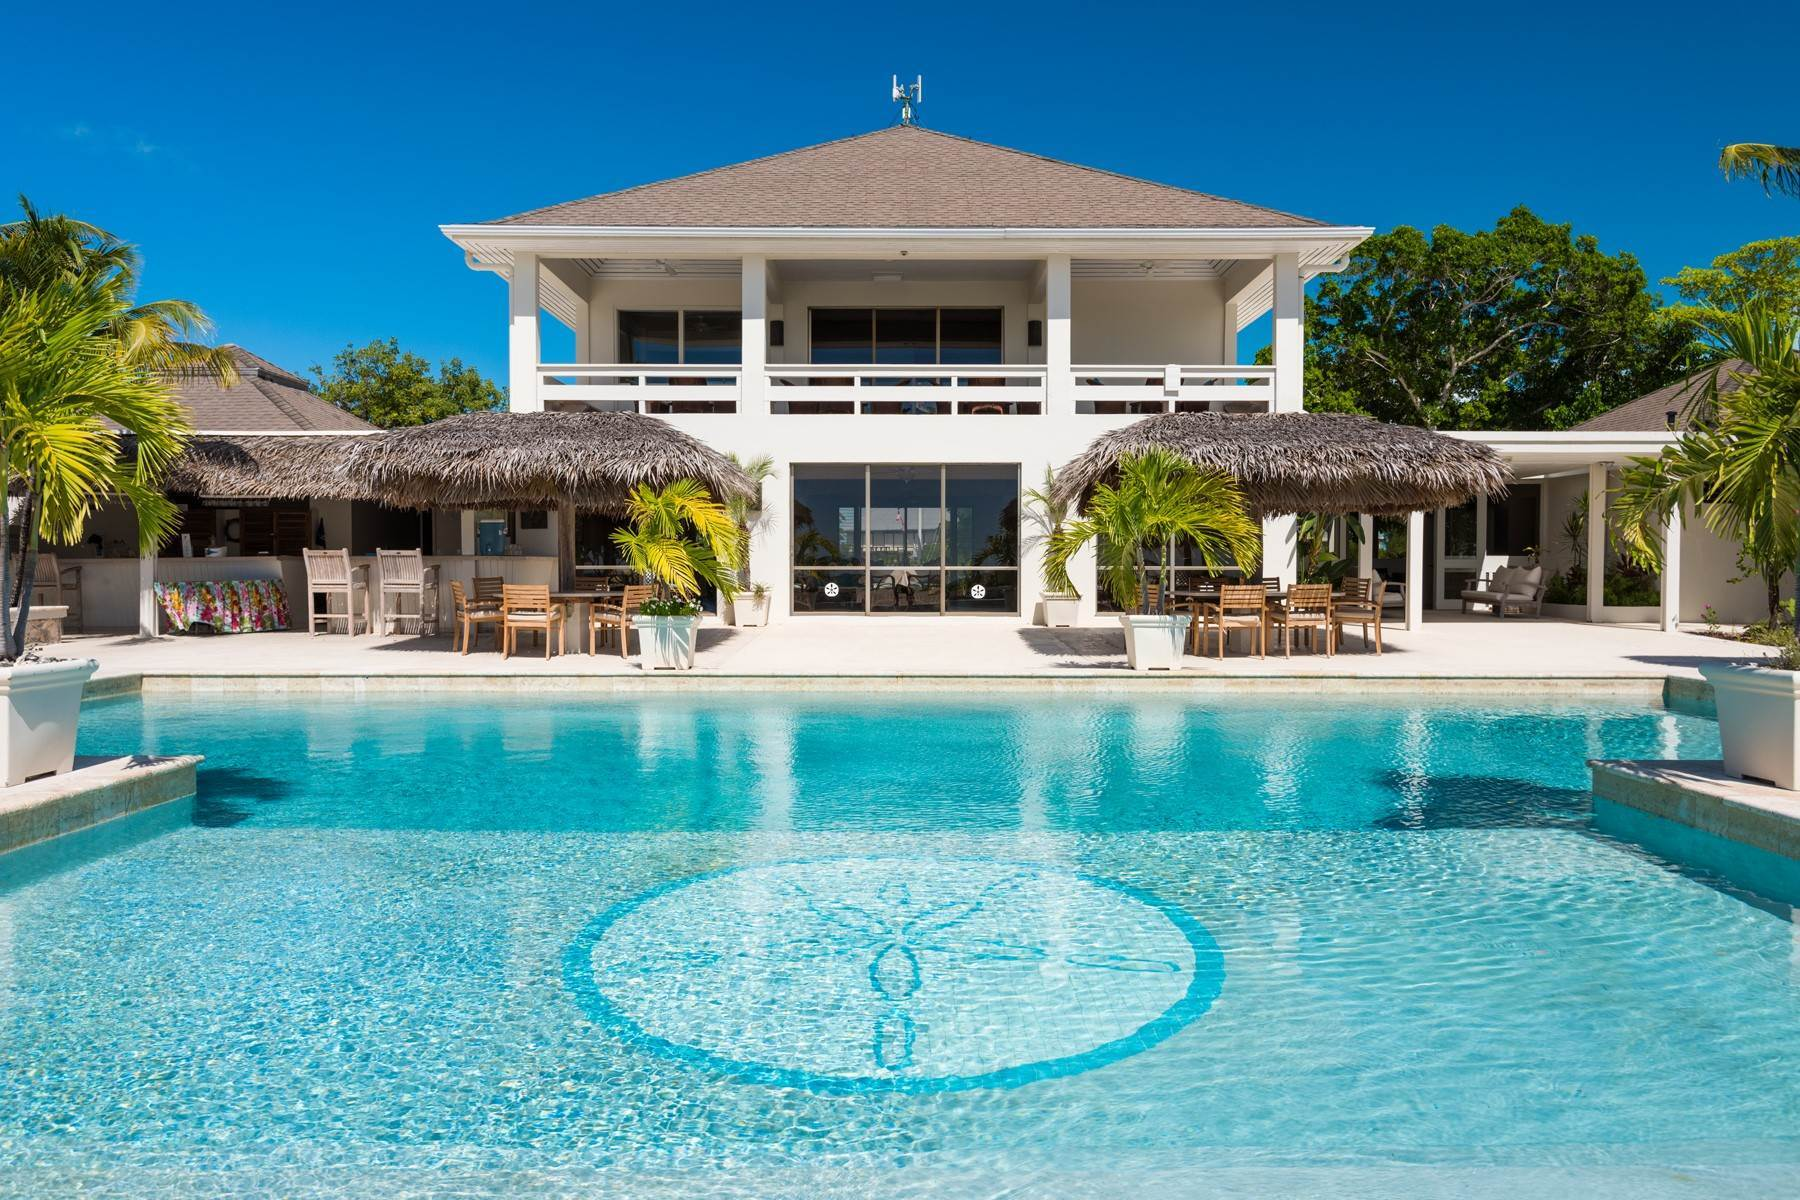 31. Single Family Homes for Sale at Casuarinas Cottage Pine Cay Pine Cay, Pine Cay TCI BWI Turks And Caicos Islands